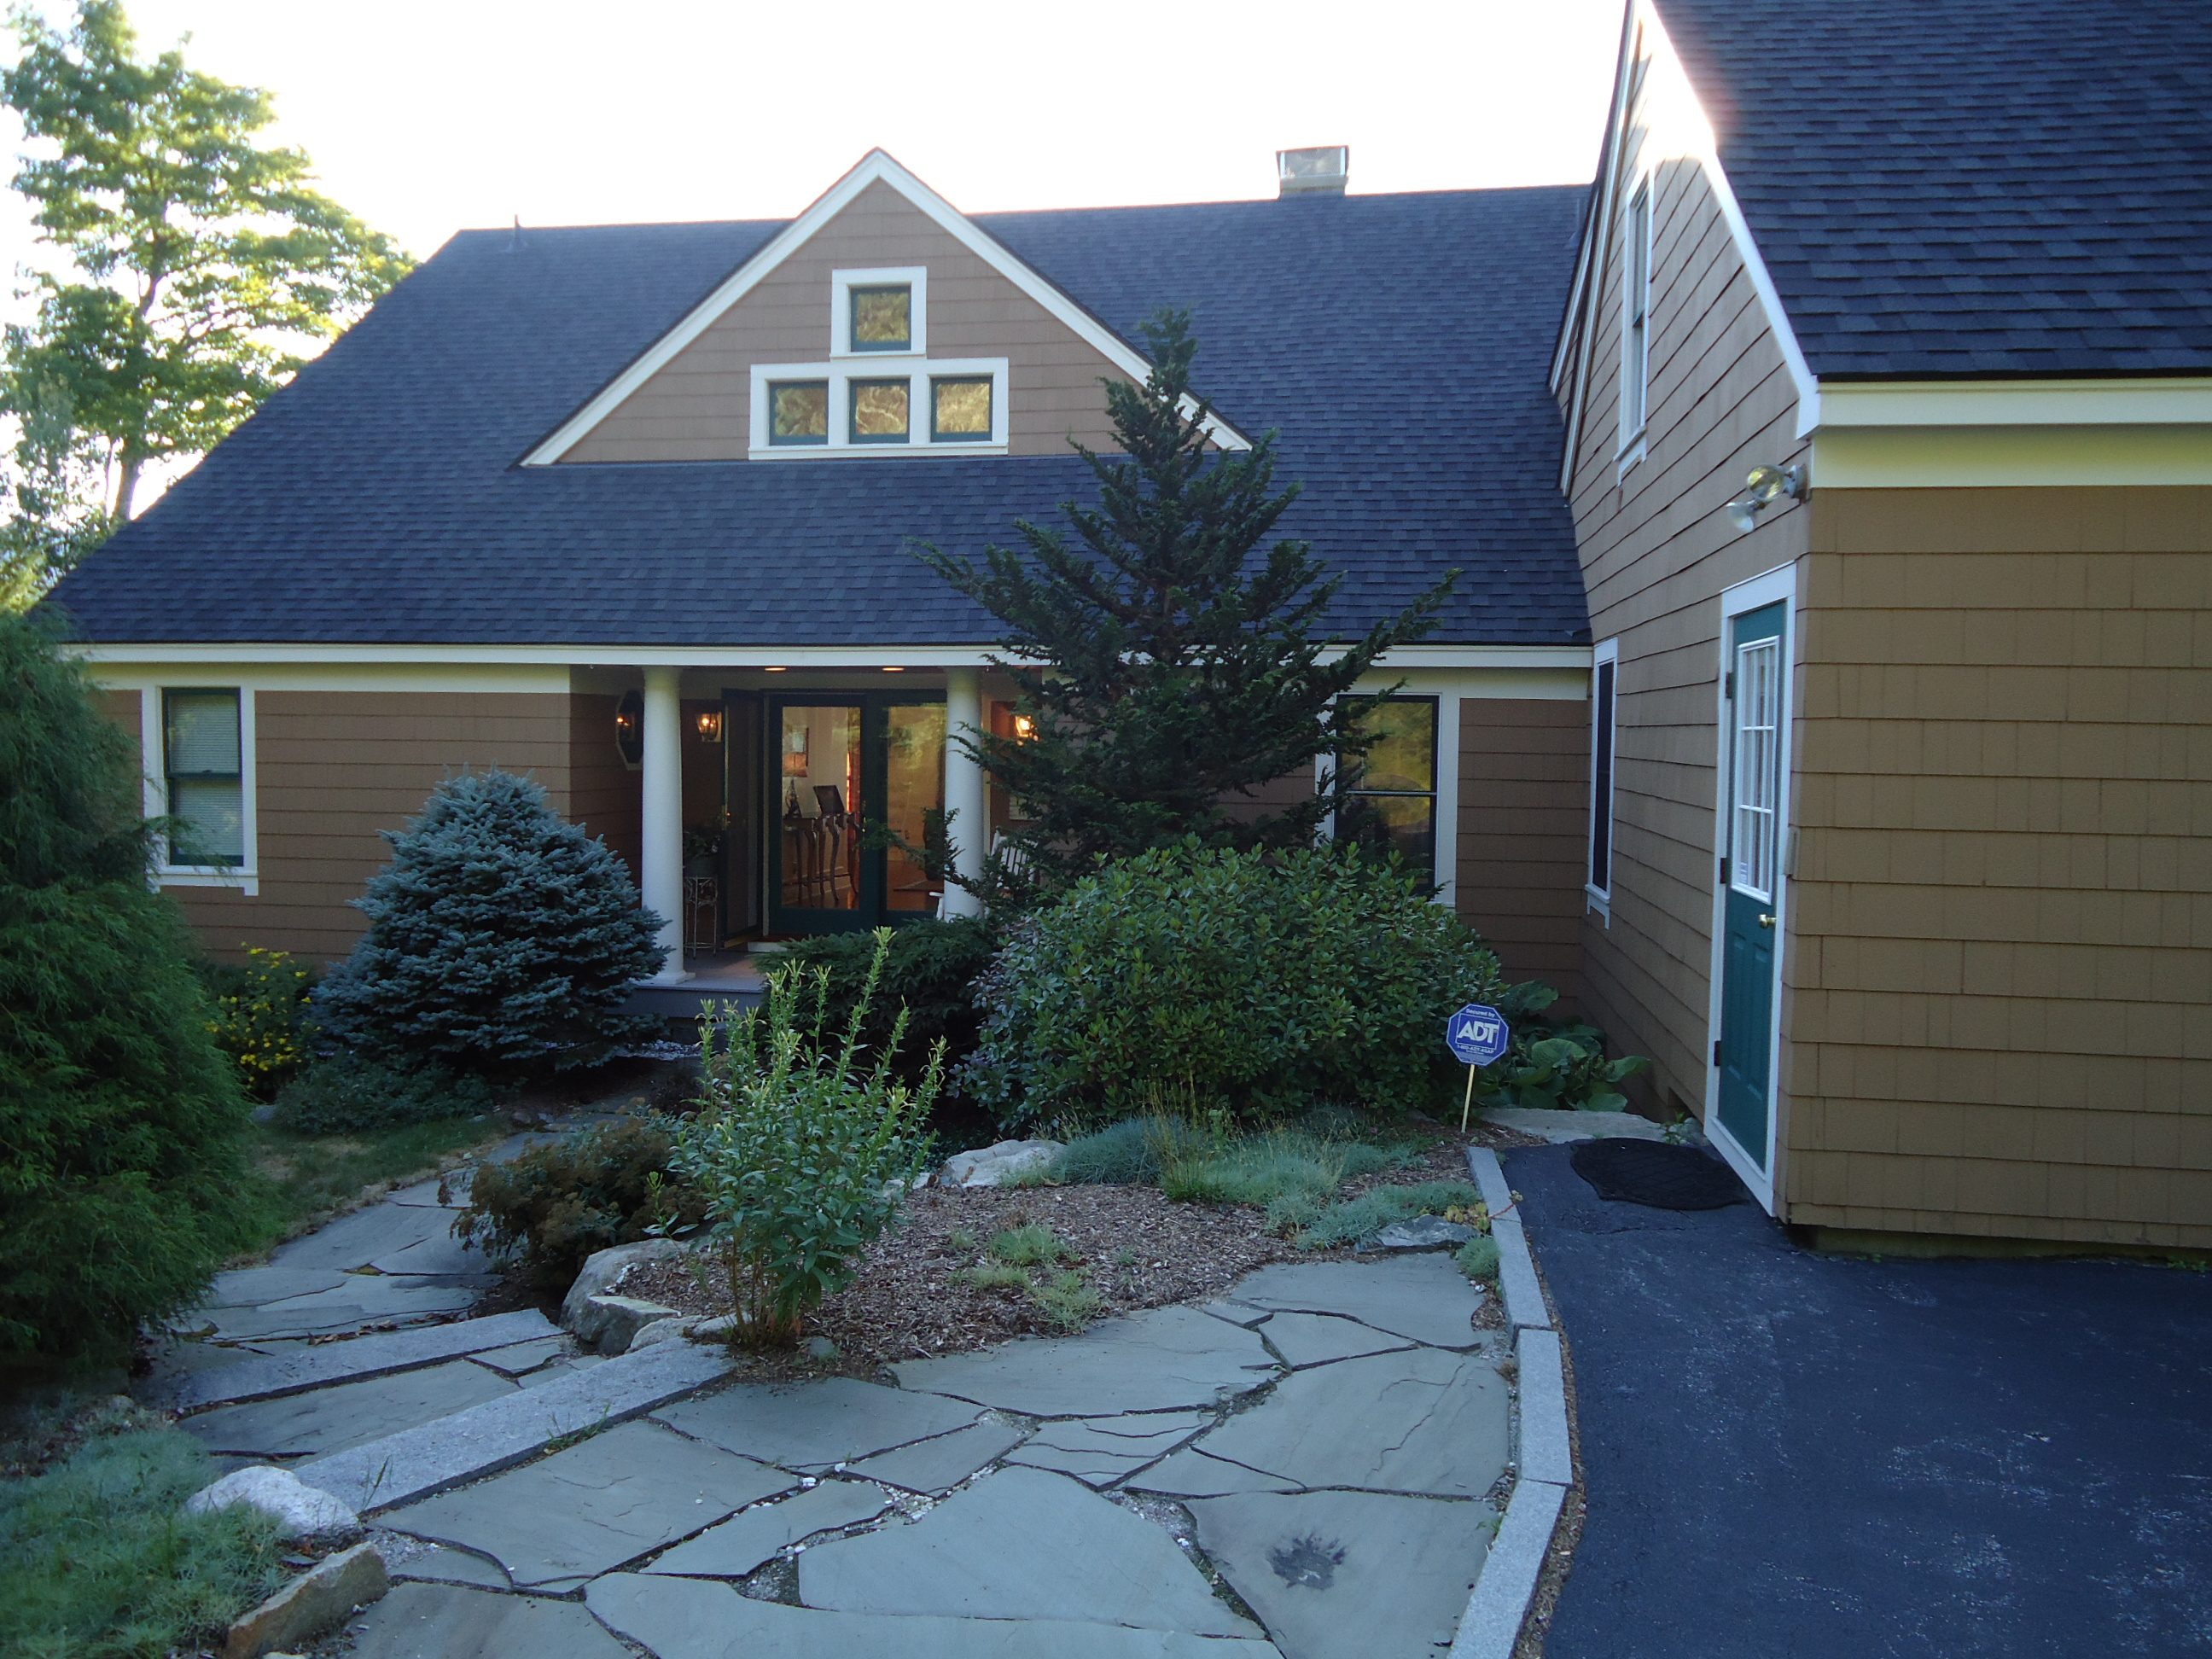 Single Family Home for Sale at Beautiful Comtemparary Overlooking Lake Sunapee 51 Blye Hill Landing Newbury, New Hampshire 03255 United States